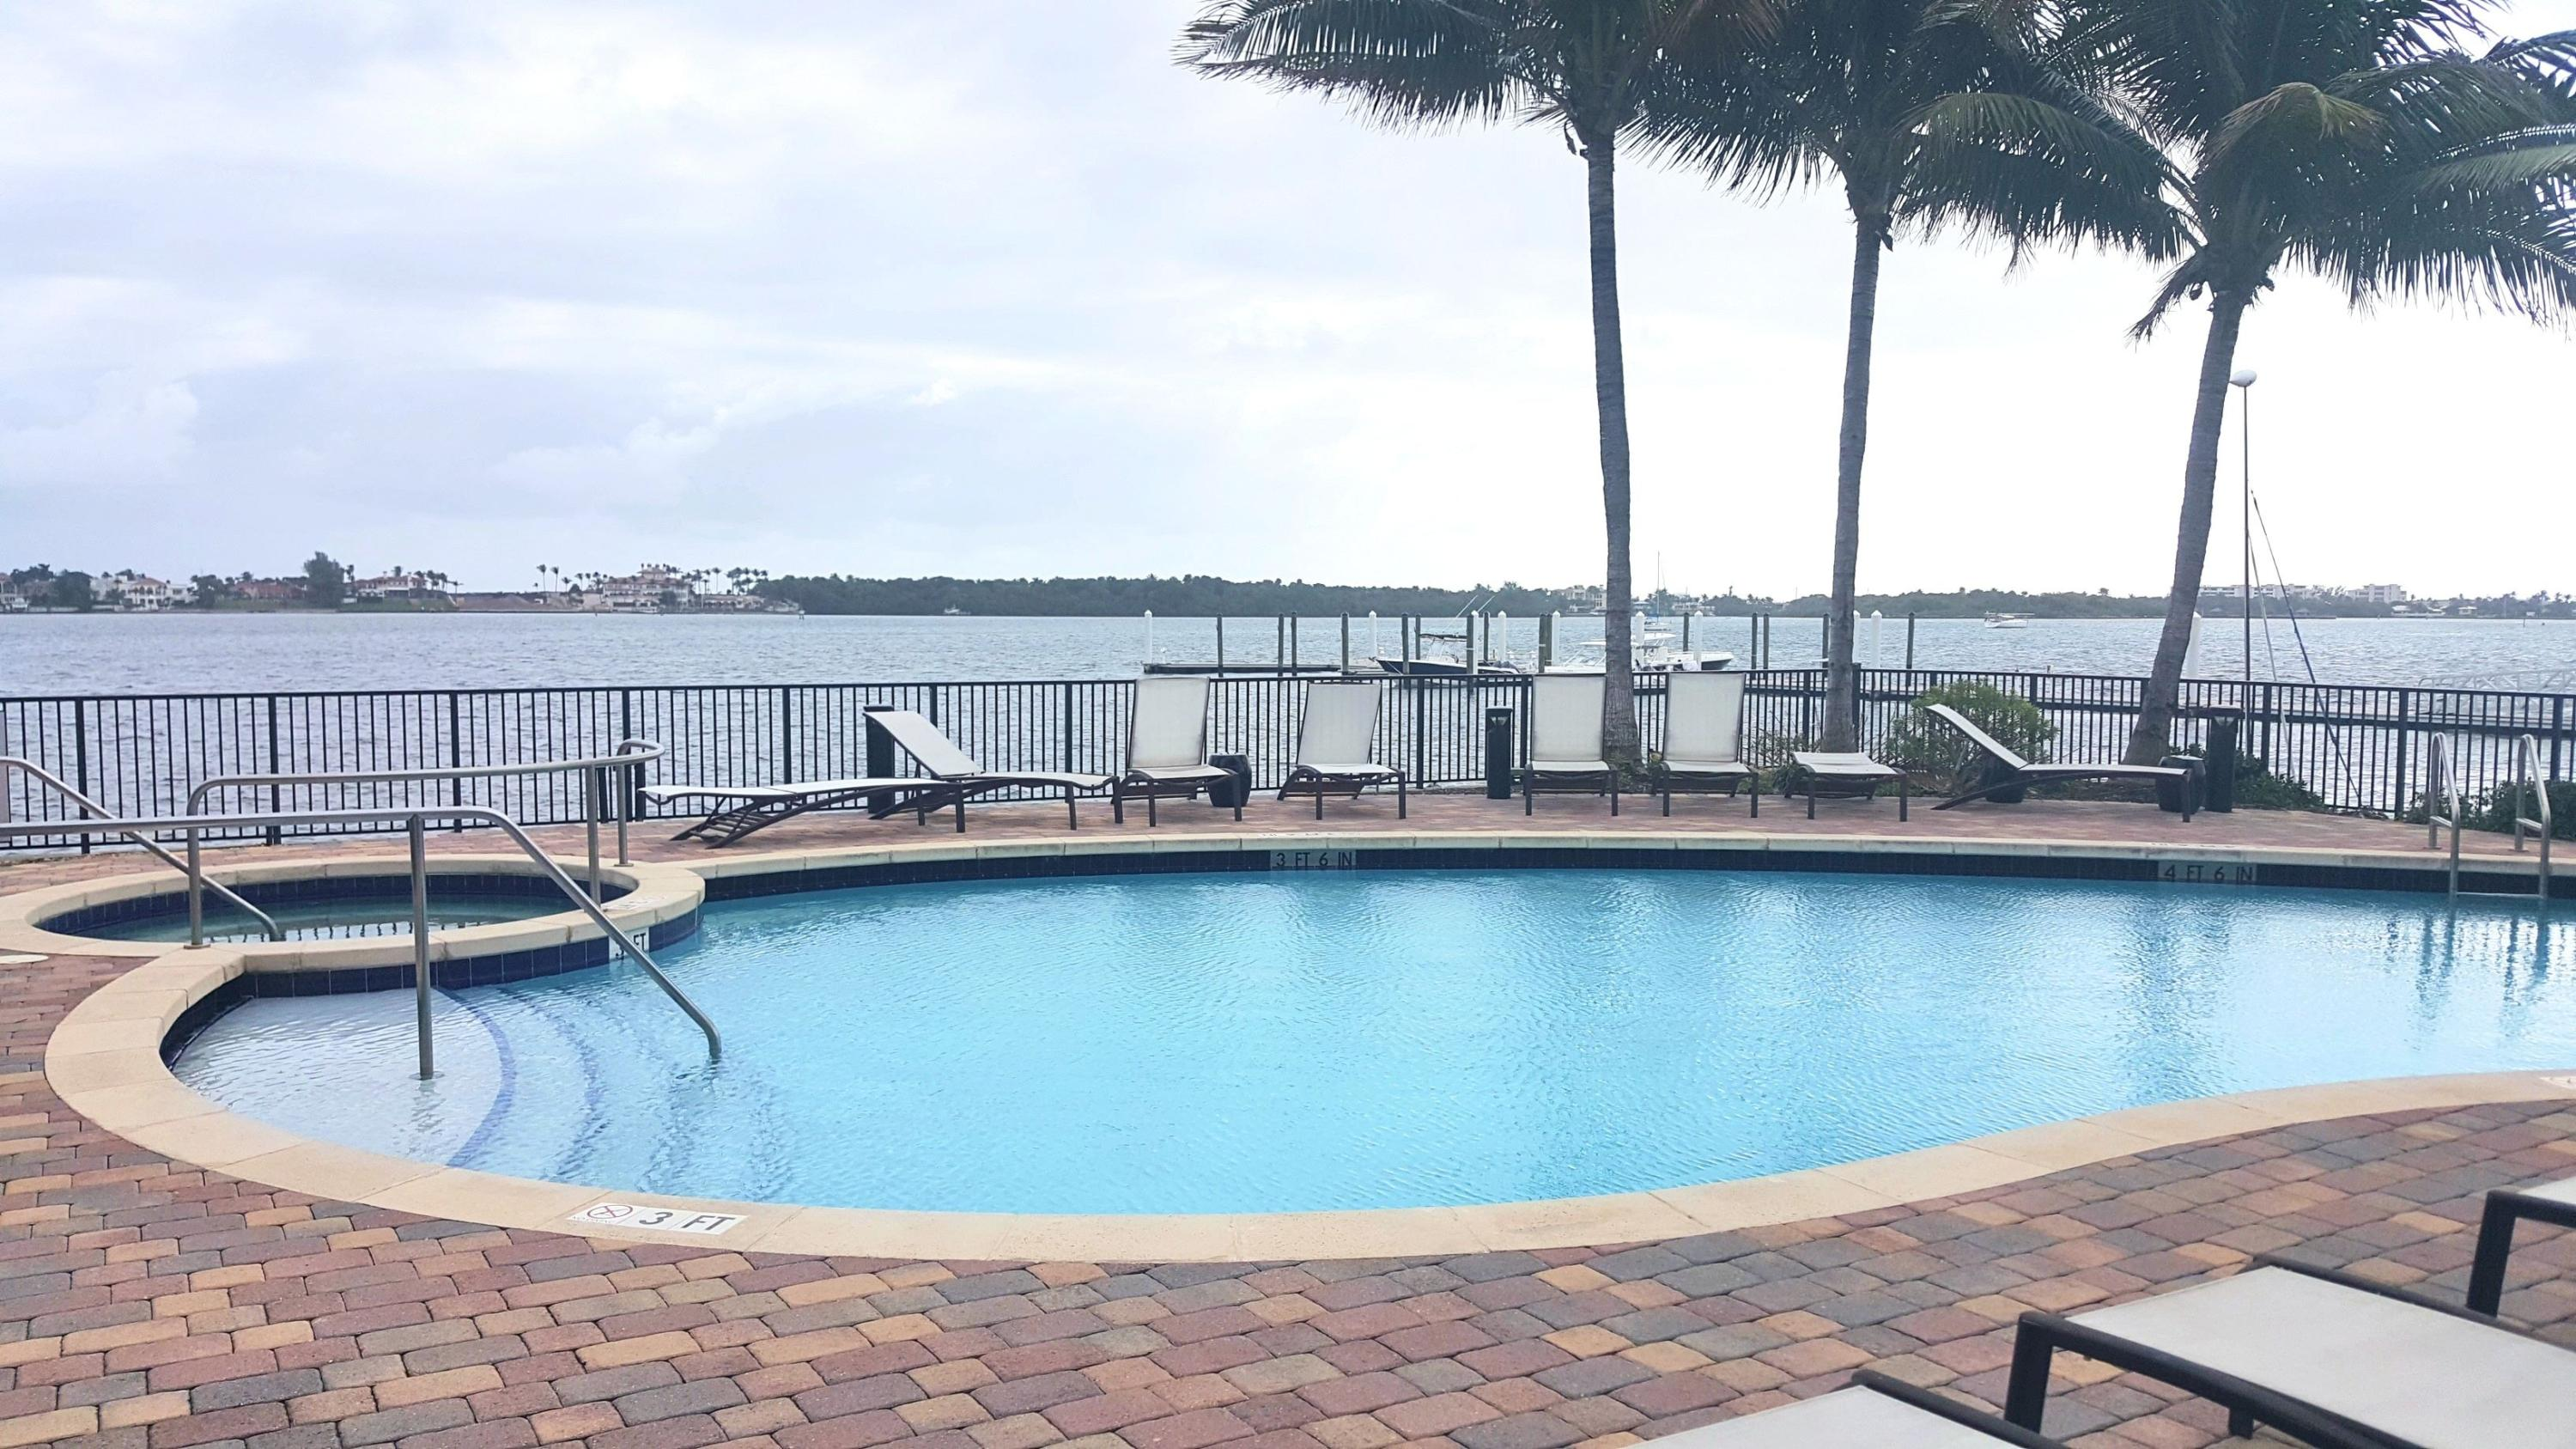 EXPERIENCE THE IDEAL FLORIDA LIFESTYLE 3/3.5 TRI-LEVEL TOWNHOUSE UNDER $400K WITH ATTACHED 2 CAR GARAGE FOR ALL YOUR TOYS. LOCATED IN ONE OF THE PREMIER WATERFRONT SUBDIVISIONS, PENINSULA ON THE INTRACOASTAL. YOU'LL ENJOY ALL THE BENEFITS OF A RESORT STYLE WATERFRONT COMMUNITY WITH A POOL, OUTDOOR BILLIARDS, BUSINESS CENTER, GYM, AND EVEN A SMALL DOG PARK! FEATURING 3 FULL BEDROOMS AND 3 FULL BATHS (PLUS A HALF), A TRI-LEVEL FLOORPLAN IN THE MODERN DESIGN WITH ALL THE CONTEMPORARY FITTINGS YOU'RE USED TO SUCH AS GRANITE AND STAINLESS STEEL IN THE KITCHEN, RICH WOOD VANITIES, AND A SEPARATE TUB AND WALK-IN SHOWER IN THE MASTER BATH. PLENTY OF ROOM FOR THE WHOLE FAMILY. SCHEDULE YOUR SHOWING TODAY.